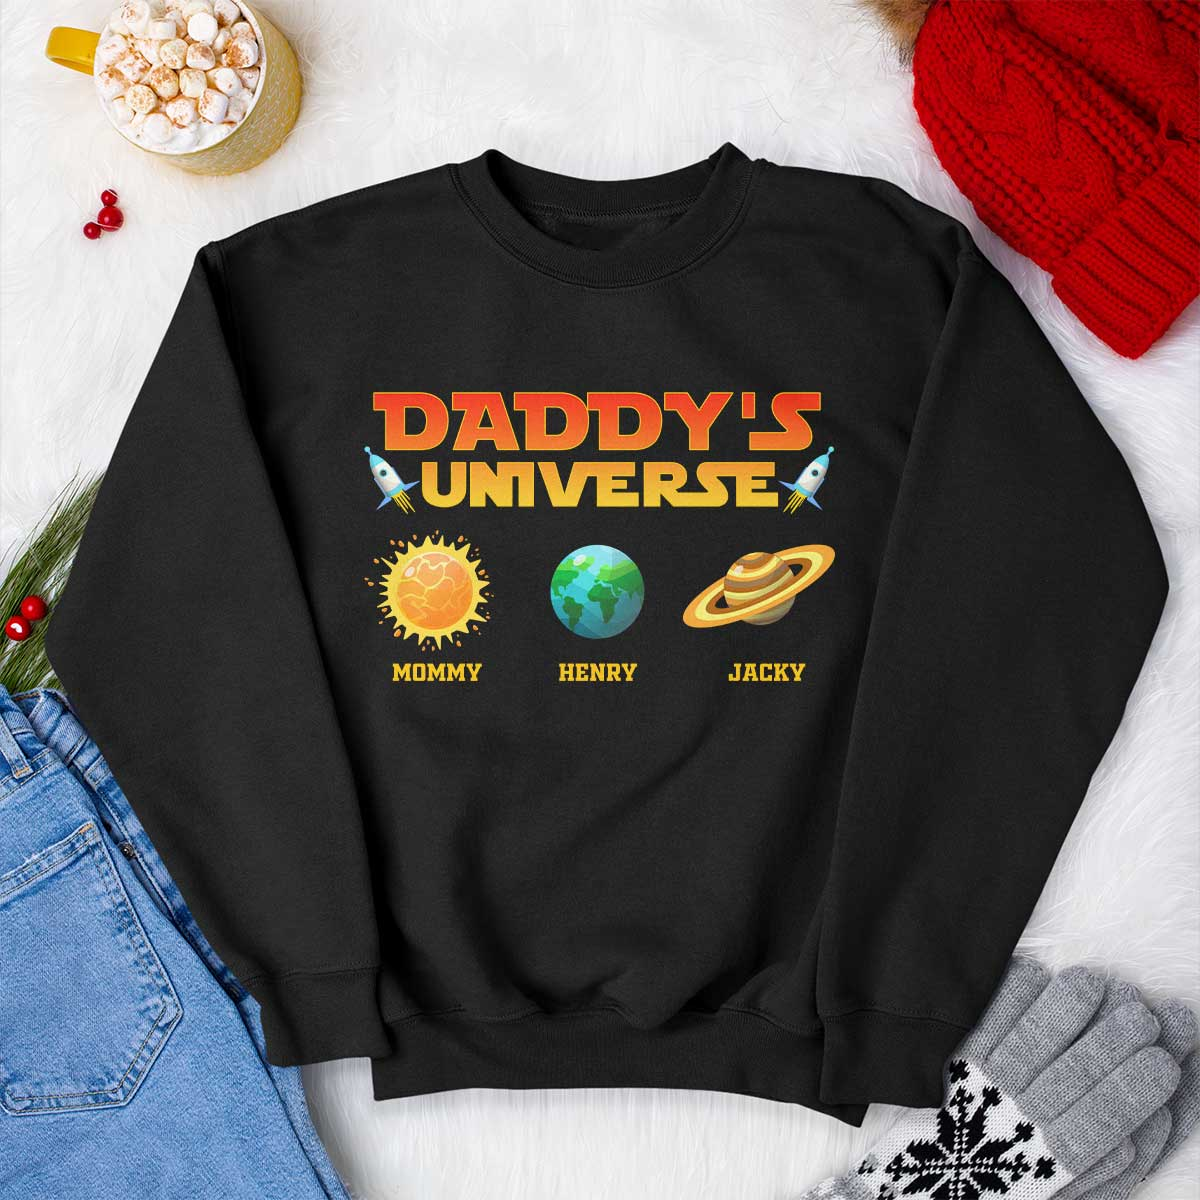 Sweatshirt? - Isn't it quite plain? - If that's the case, you don't have to worry, just customize with your name to make it a one-of-a-kind shirt. I bet he would love to wear it every time he goes to a BBQ party or any other occasion.